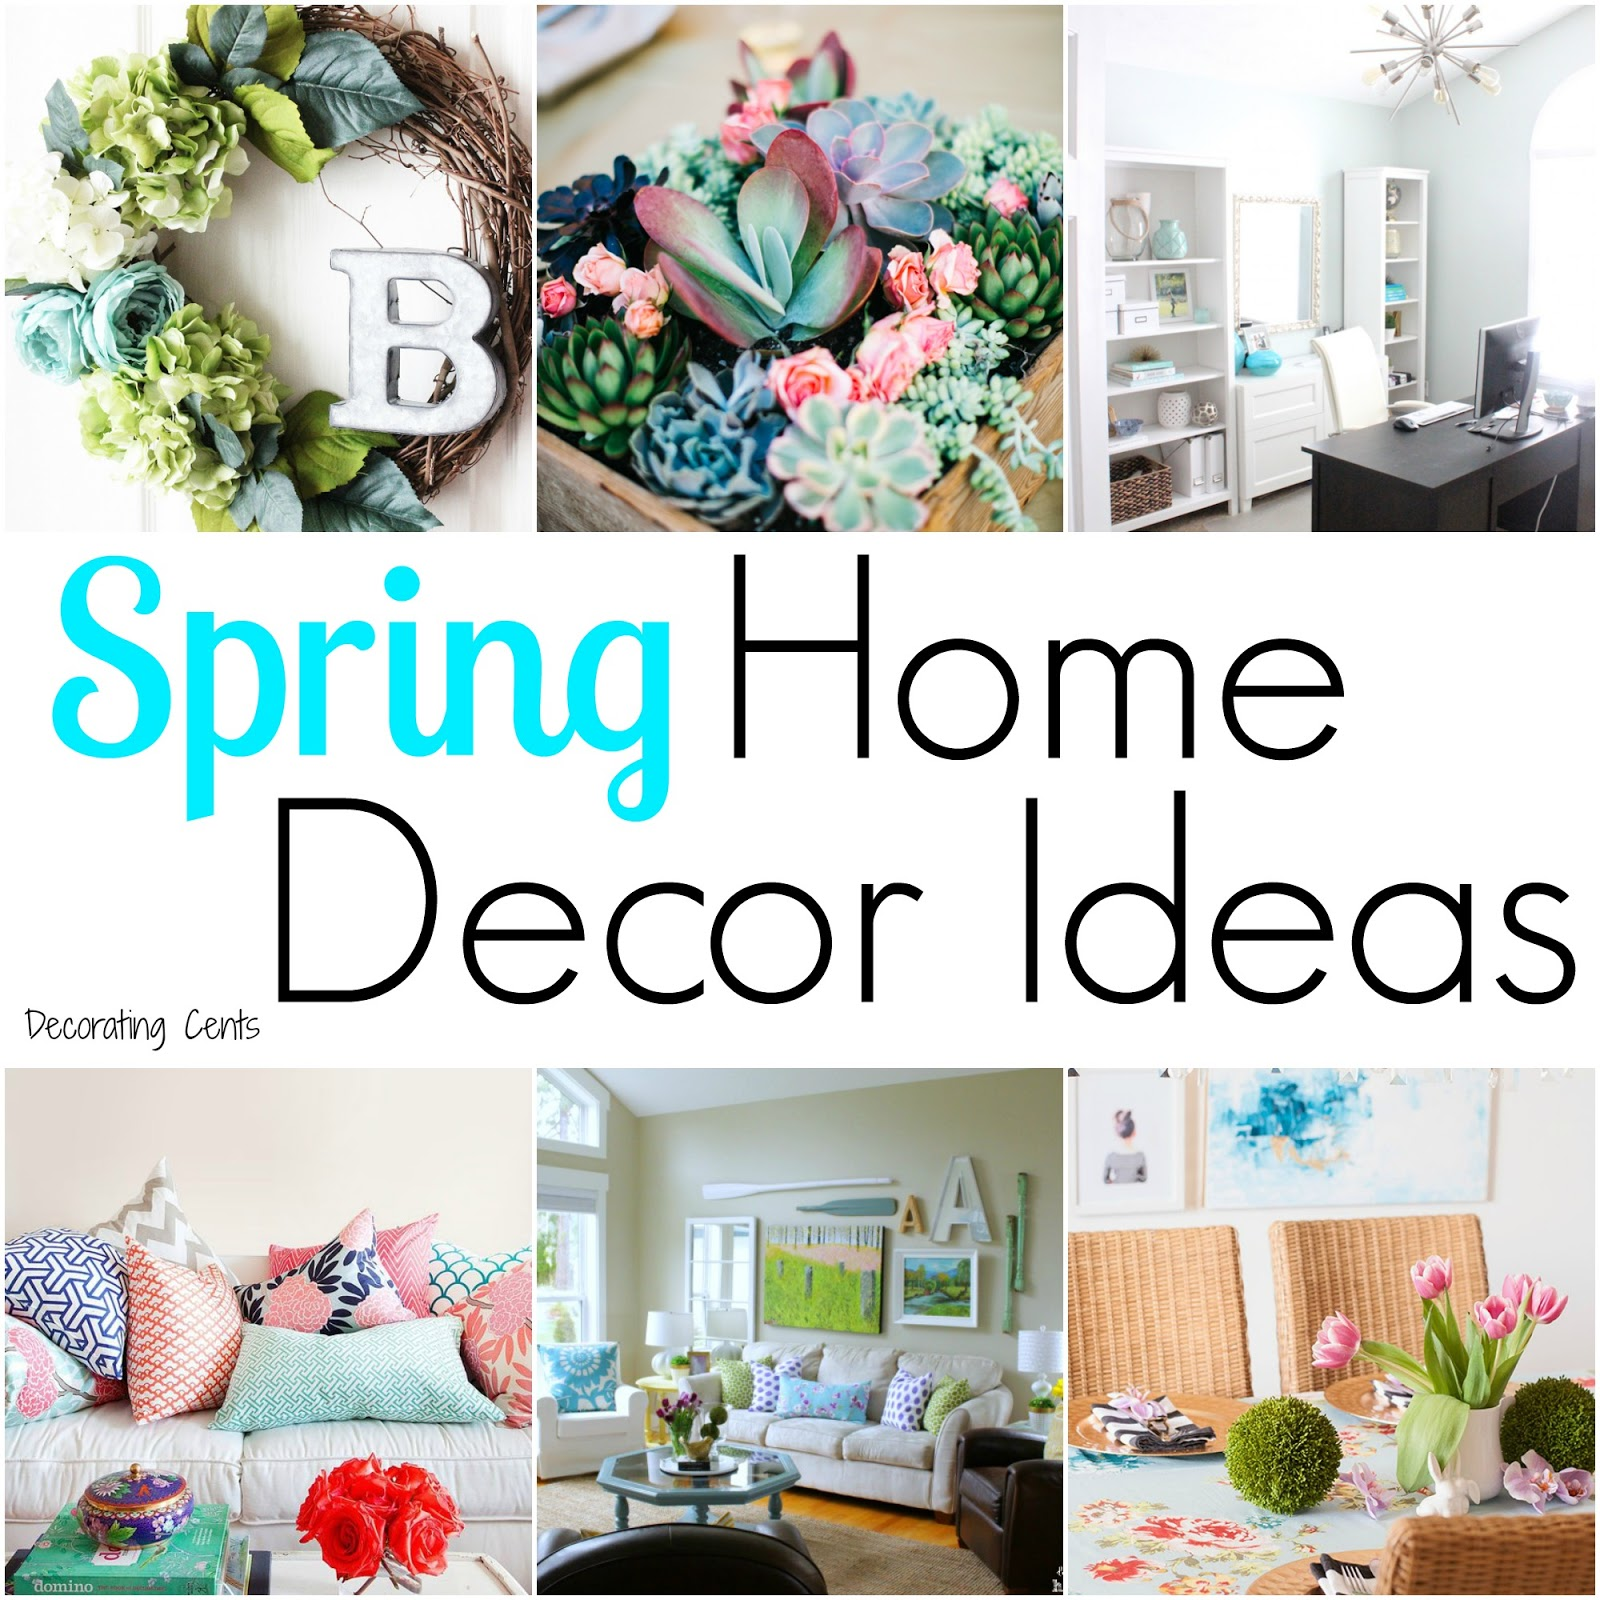 Decorating cents spring home decor ideas for Design ideas home